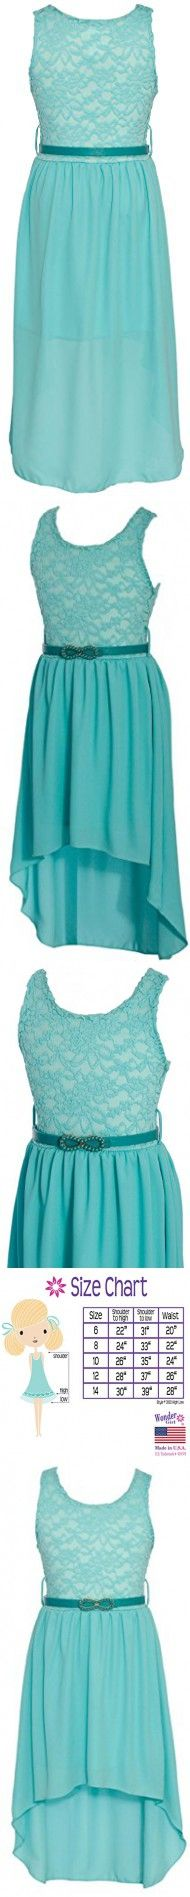 Wonder Girl Big Girls' Solid Lace Chiffon High Low Dress Set 14 Tiffany Blue